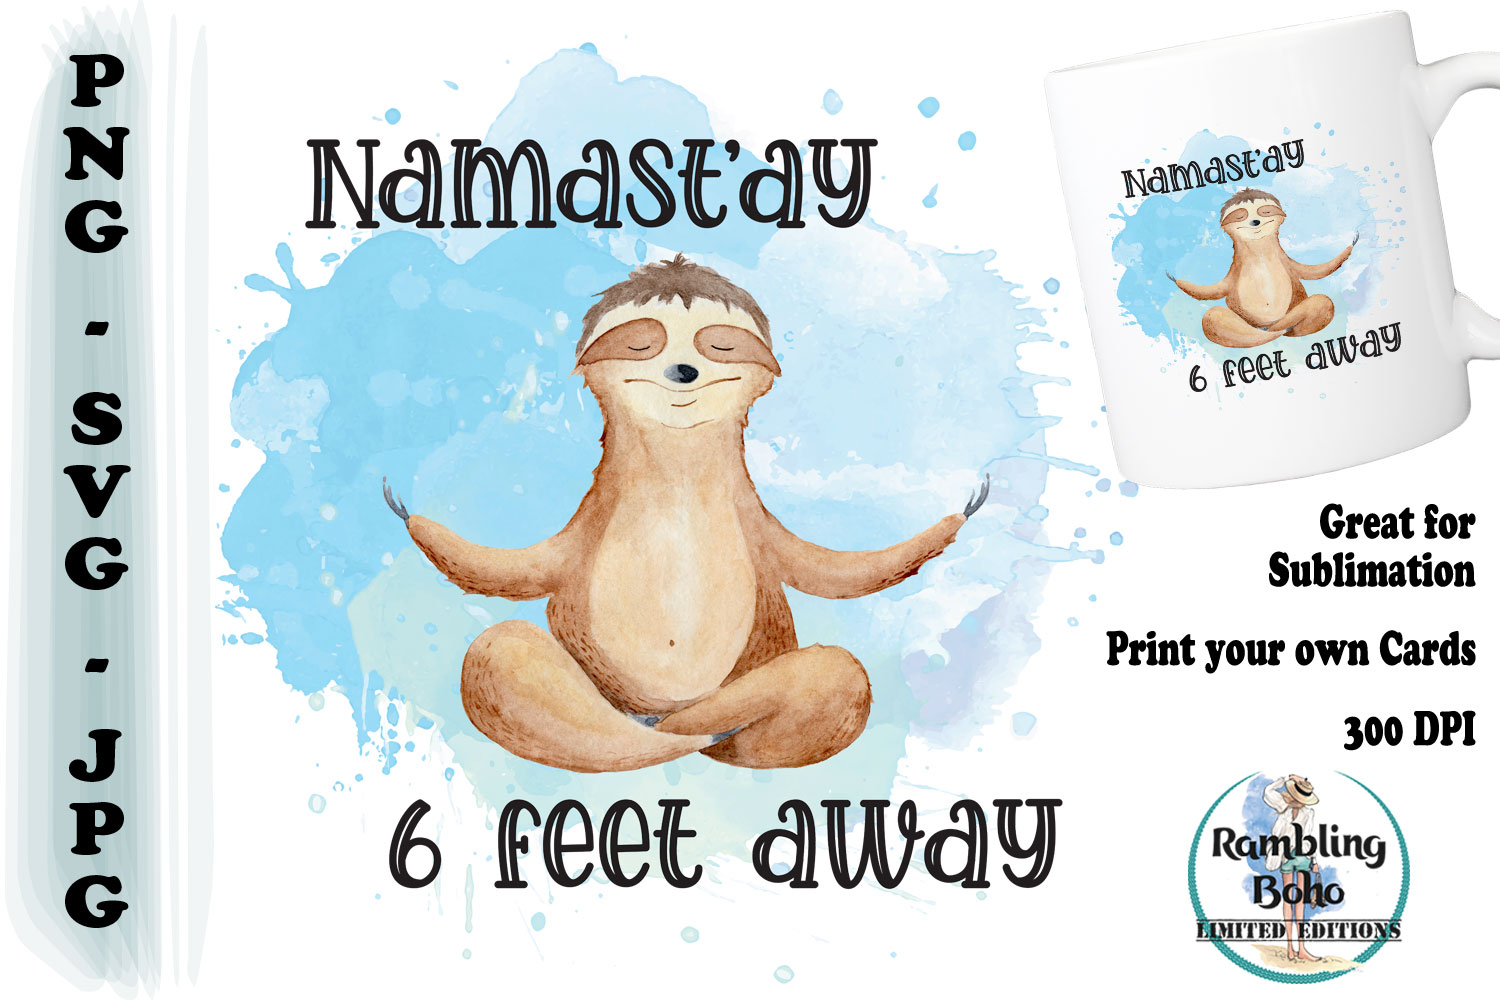 Download Free Namast Ay 6 Feet Away Graphic By Ramblingboho Creative Fabrica for Cricut Explore, Silhouette and other cutting machines.